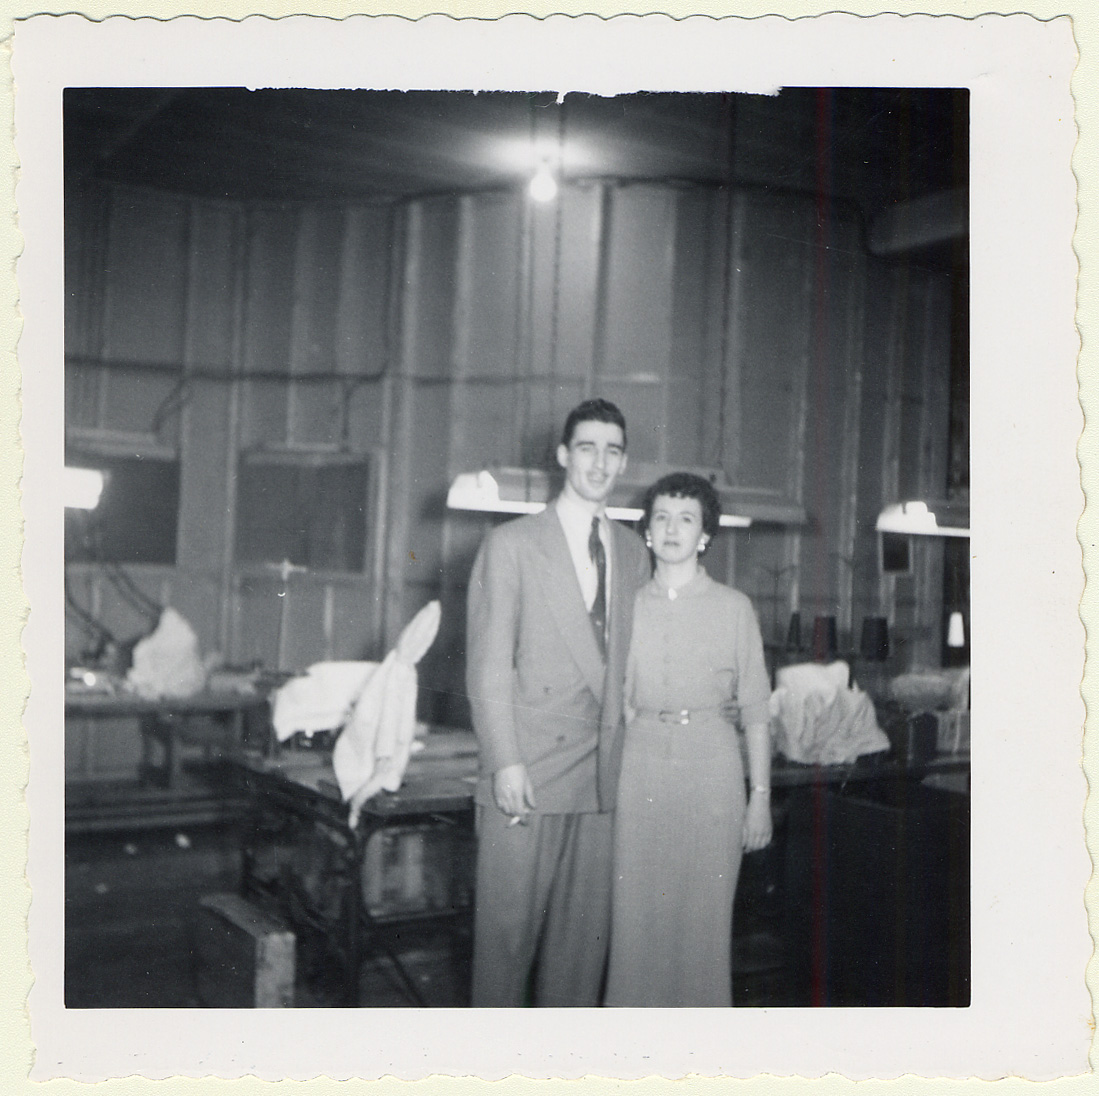 Sara Witel Winterfeldt and Oscar Morsten in Shanghai at the cafe where they met and married in April 1943.